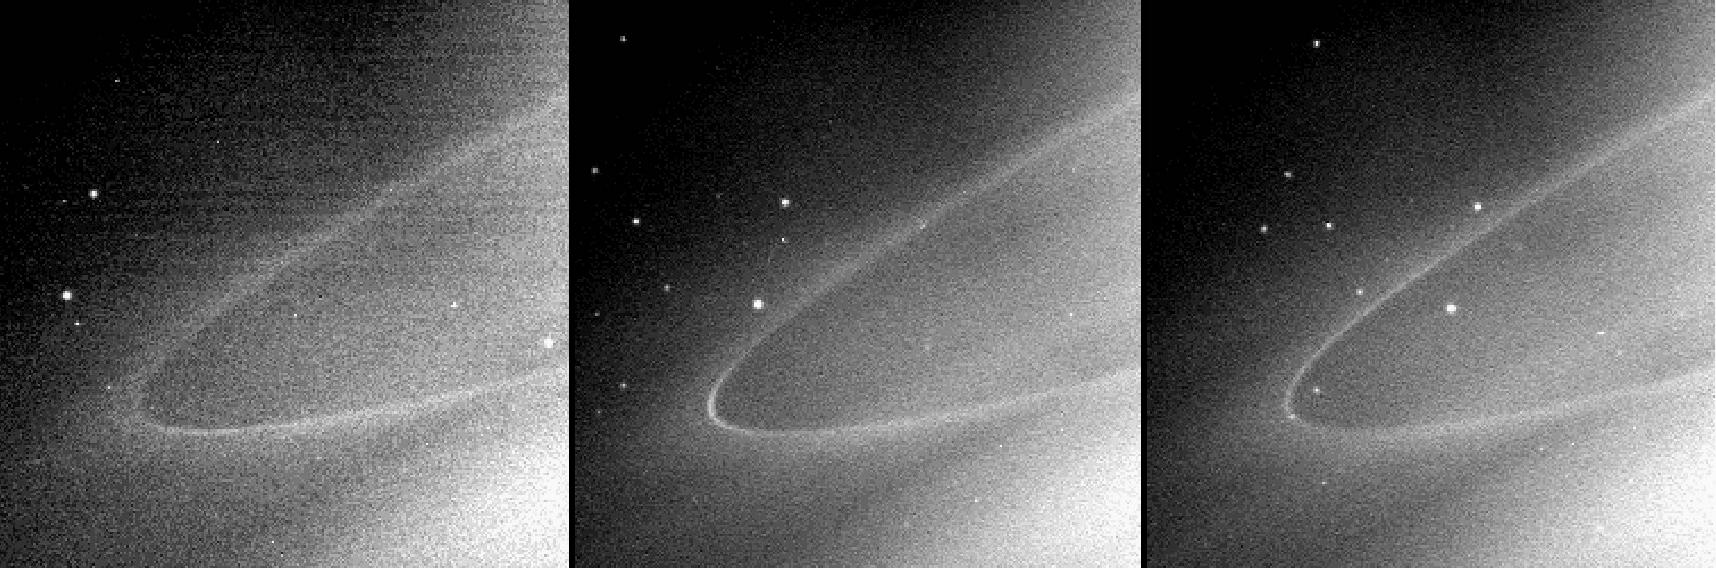 This sequence of images shows a faint arc of material in Saturn's G ring